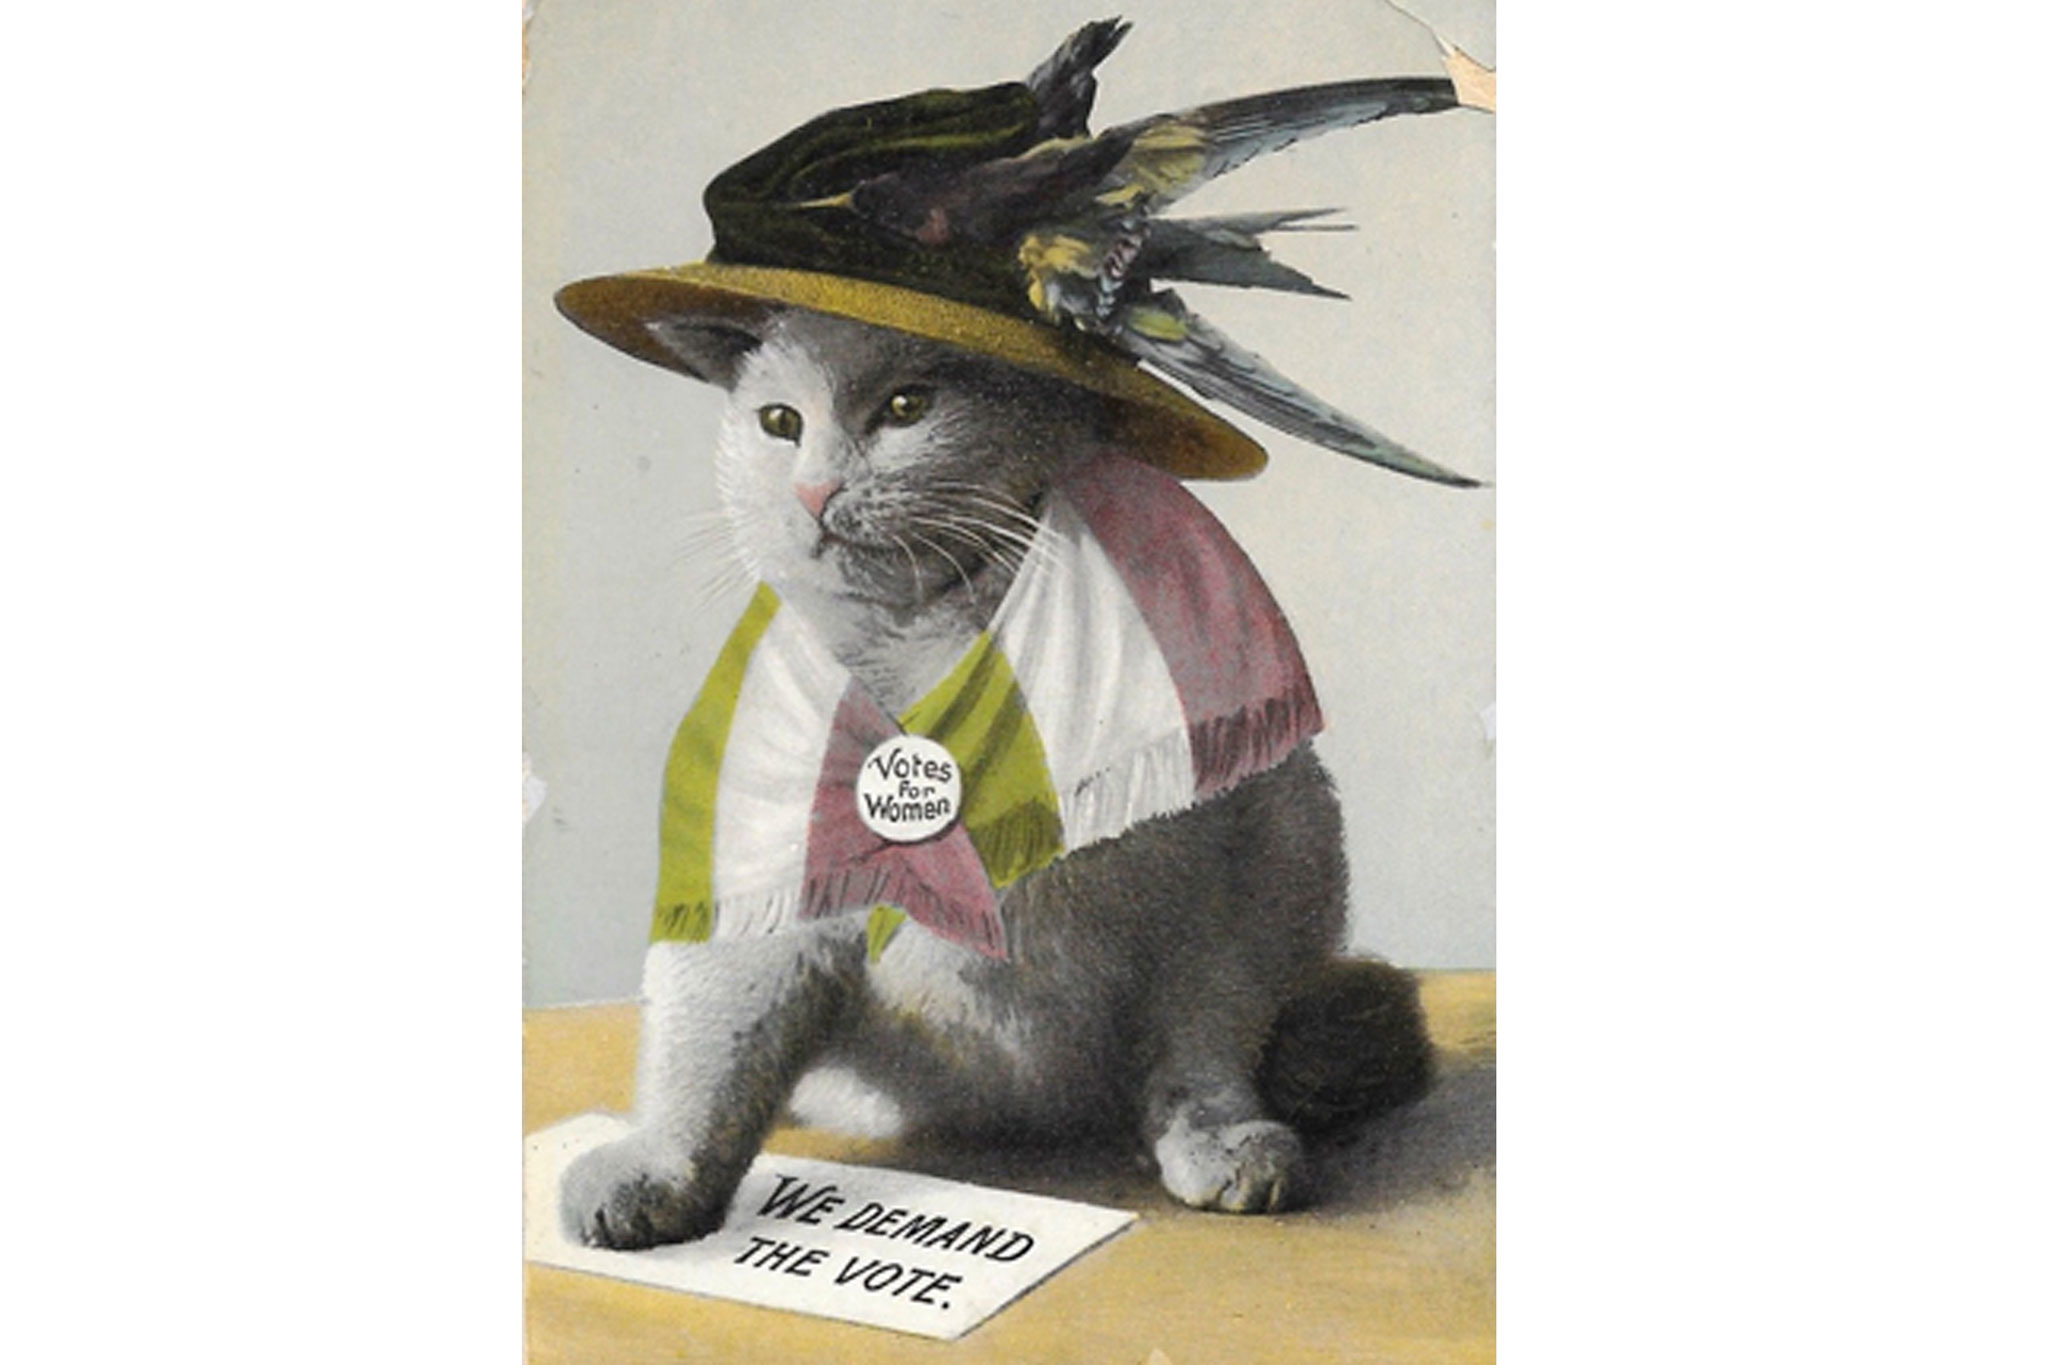 A suffragette postcard from 1910